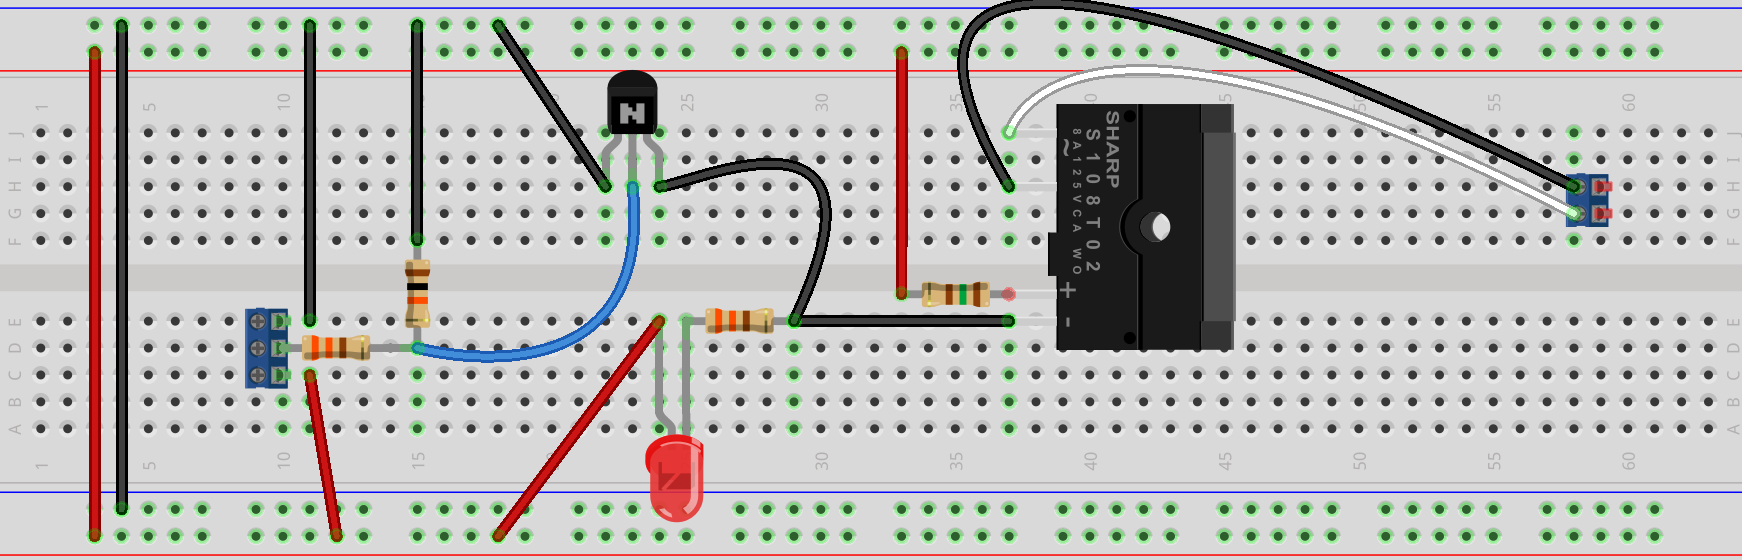 Emergency Phone Call Alert To An Arduino Via Asterisk Pbx Solidstaterelaycircuitpng S108t02 Relay Fritzing Diagram